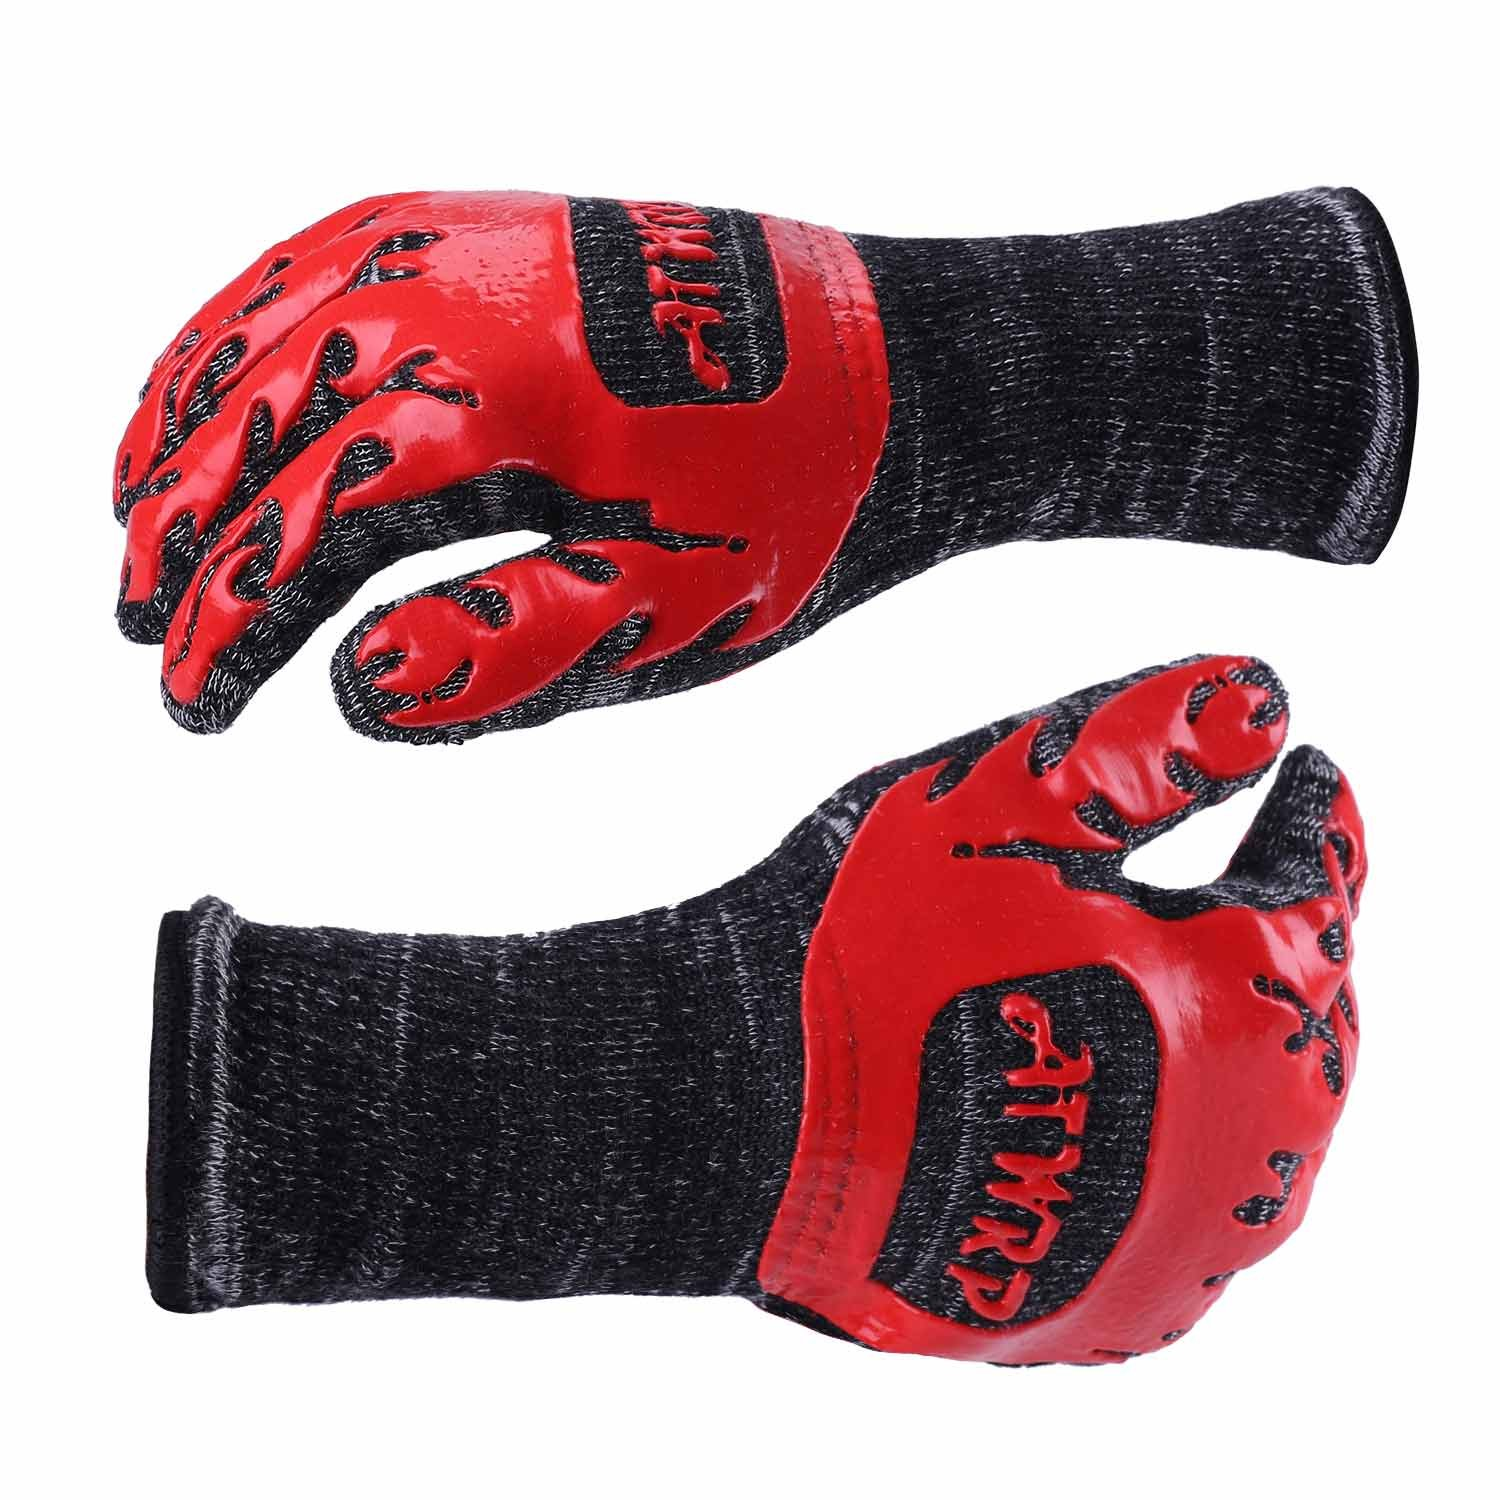 ATWRP FIREPROOF 932°F Extreme Heat Resistant BBQ Gloves by for Cooking Grilling Barbecue Charcoal Grill Smoker Tools Hot Ovens with Fingers Double Layered by ATWRP (Image #3)